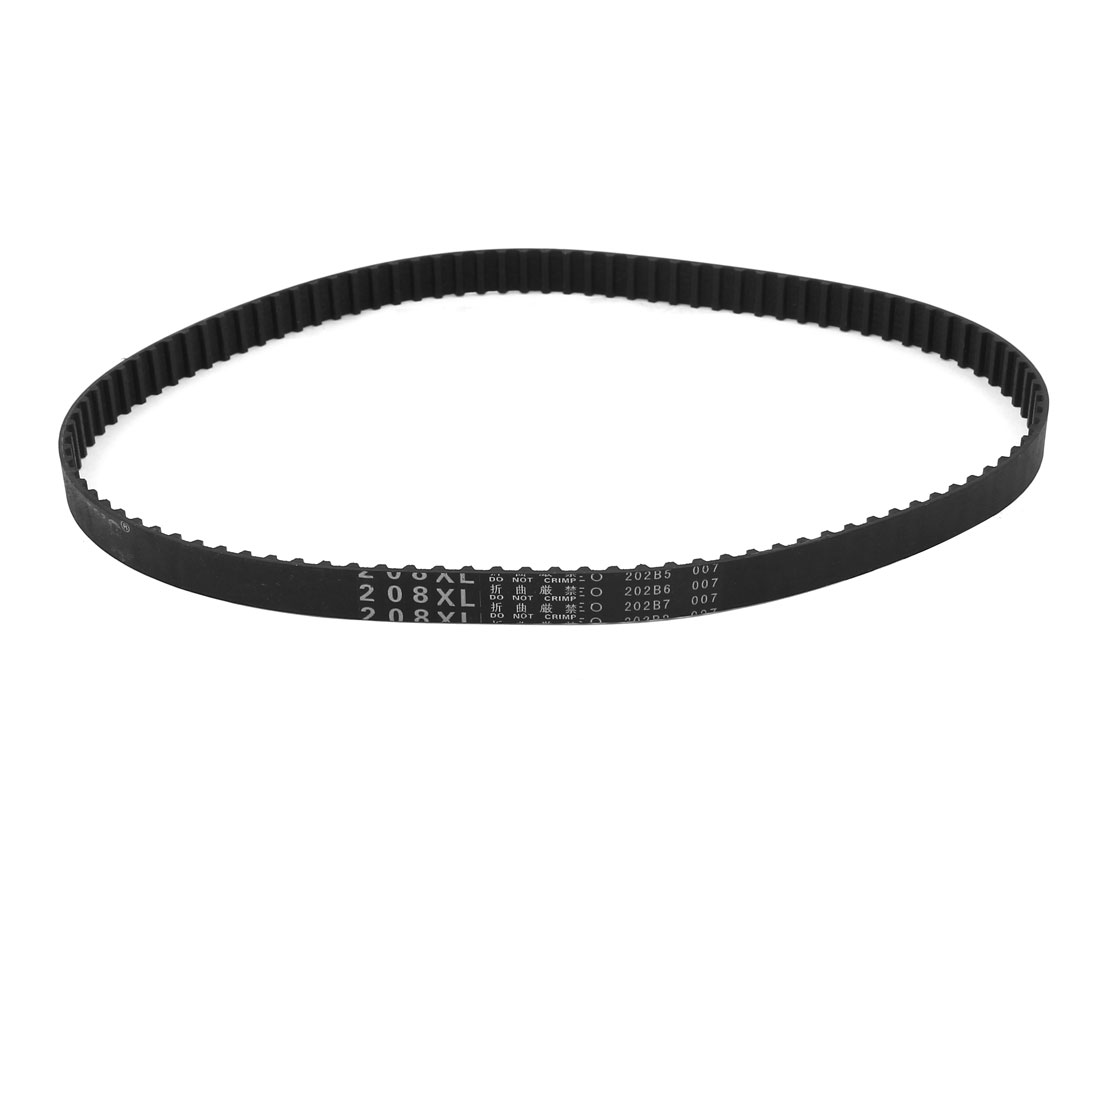 "208XL 20.8"" Girth 5.08mm Pitch 104-Teeth Black Rubber Industrial Synchro Machine Synchronous Timing Belt"